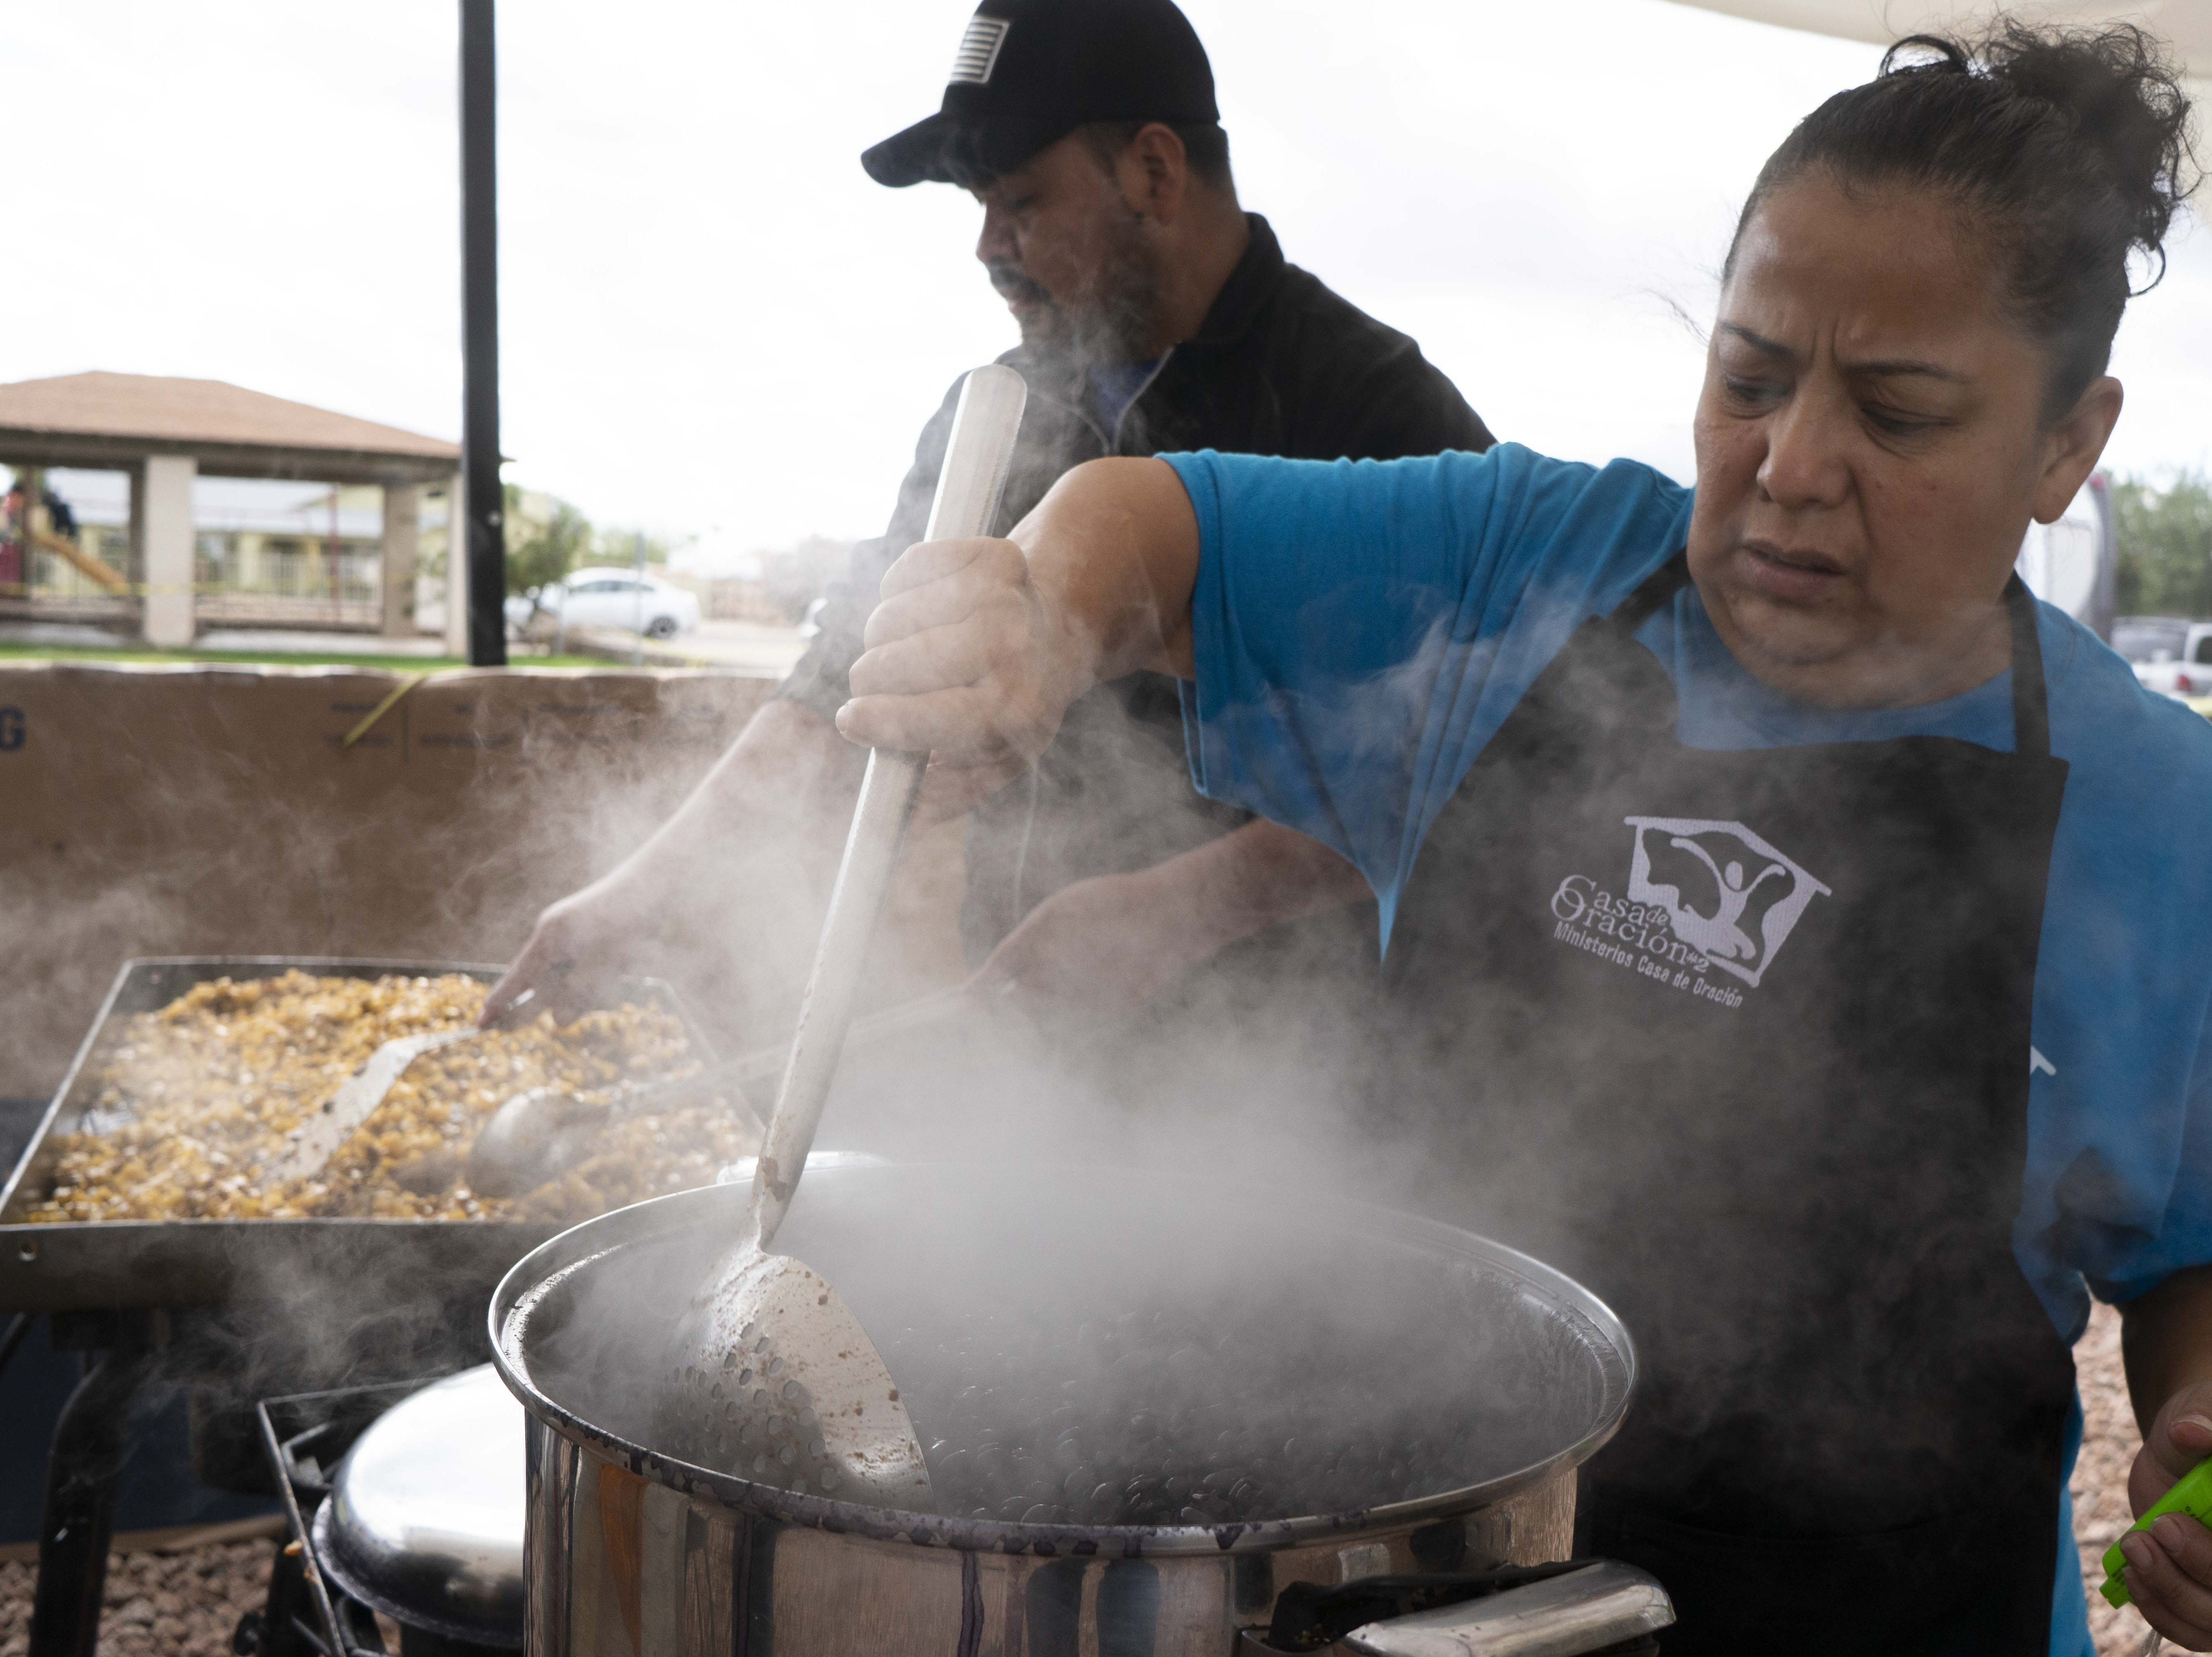 Church members prepare food for migrant families from Central America.